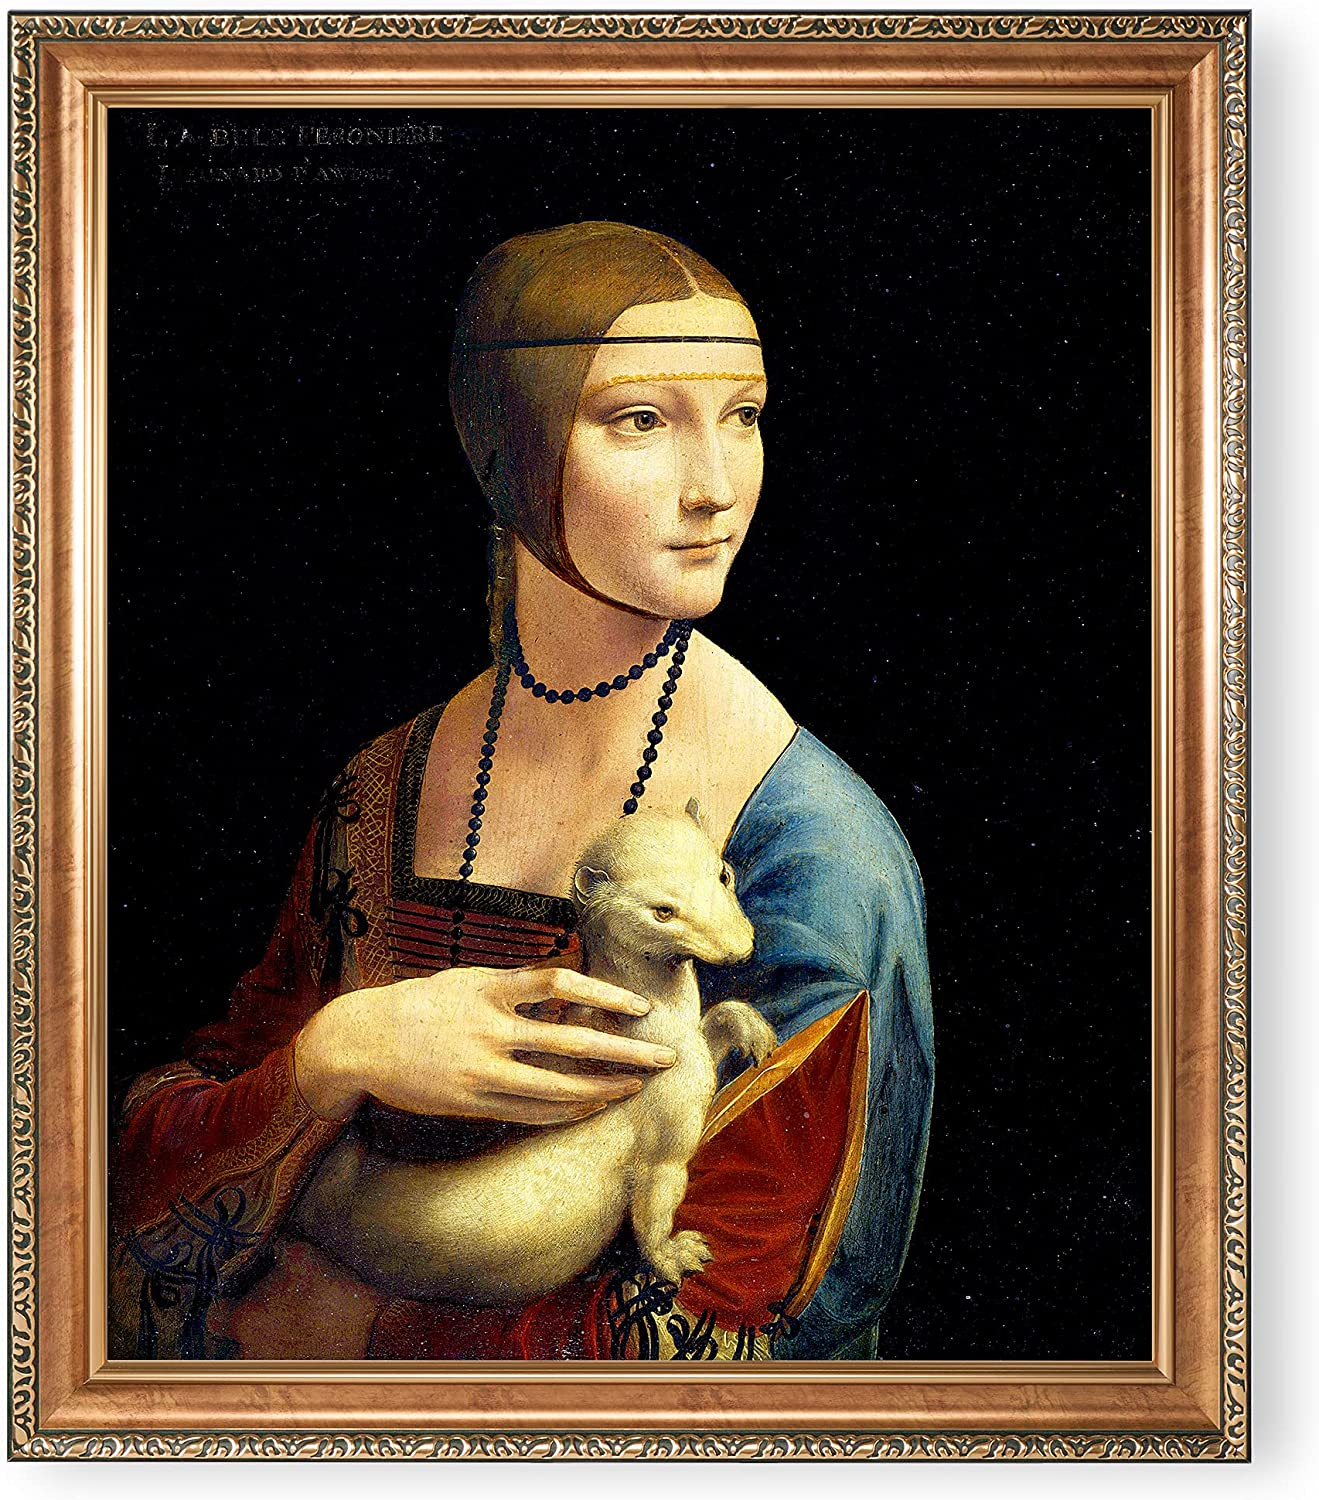 Lady with an Ermine by Leonardo da Vinci Framed Size:34.5 x 28.5 inches,Image Size:30x24 inches,Luxurious Gold Embossing Frame The World Classic Art Reproductions,Giclee Prints Wall Art for Home Décor